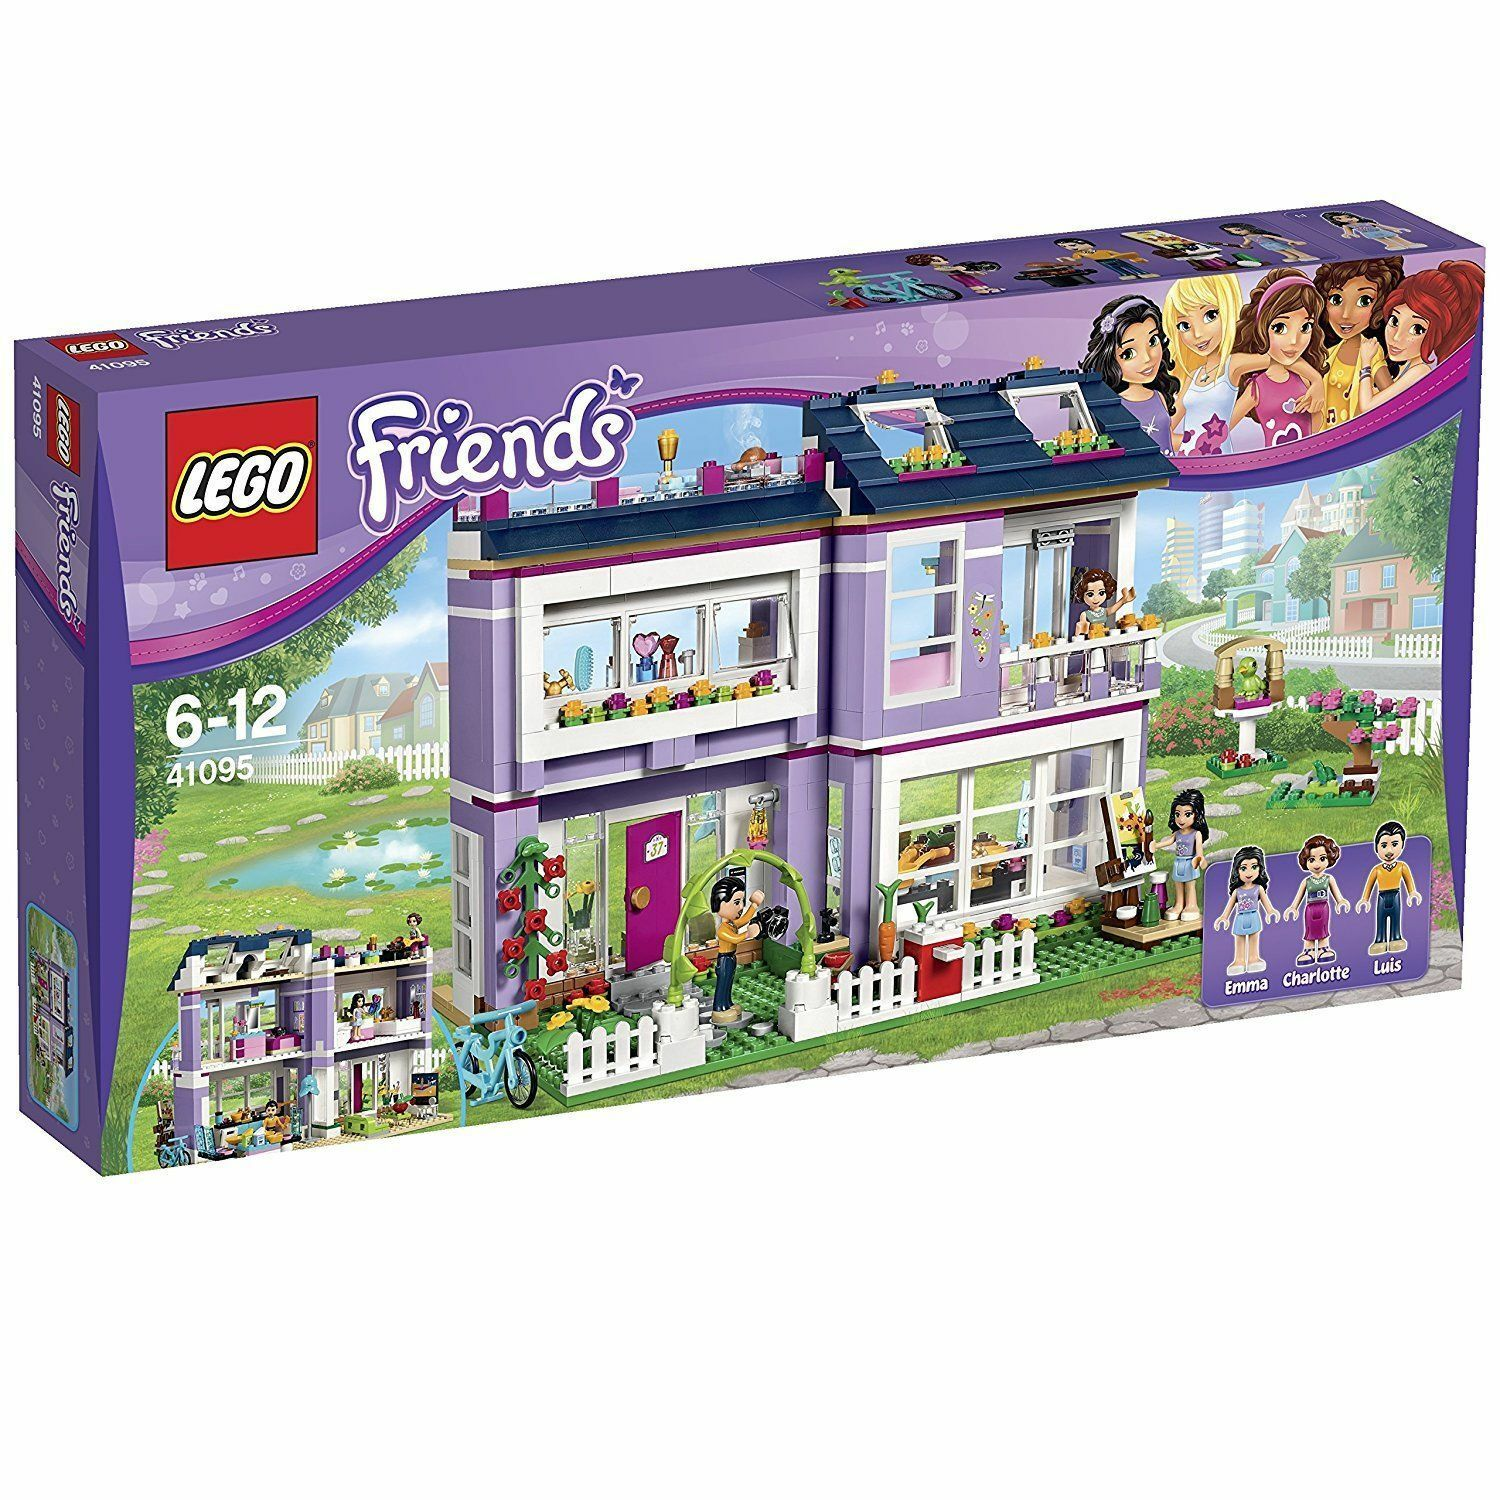 LEGO Friends Emma's House 41095 New